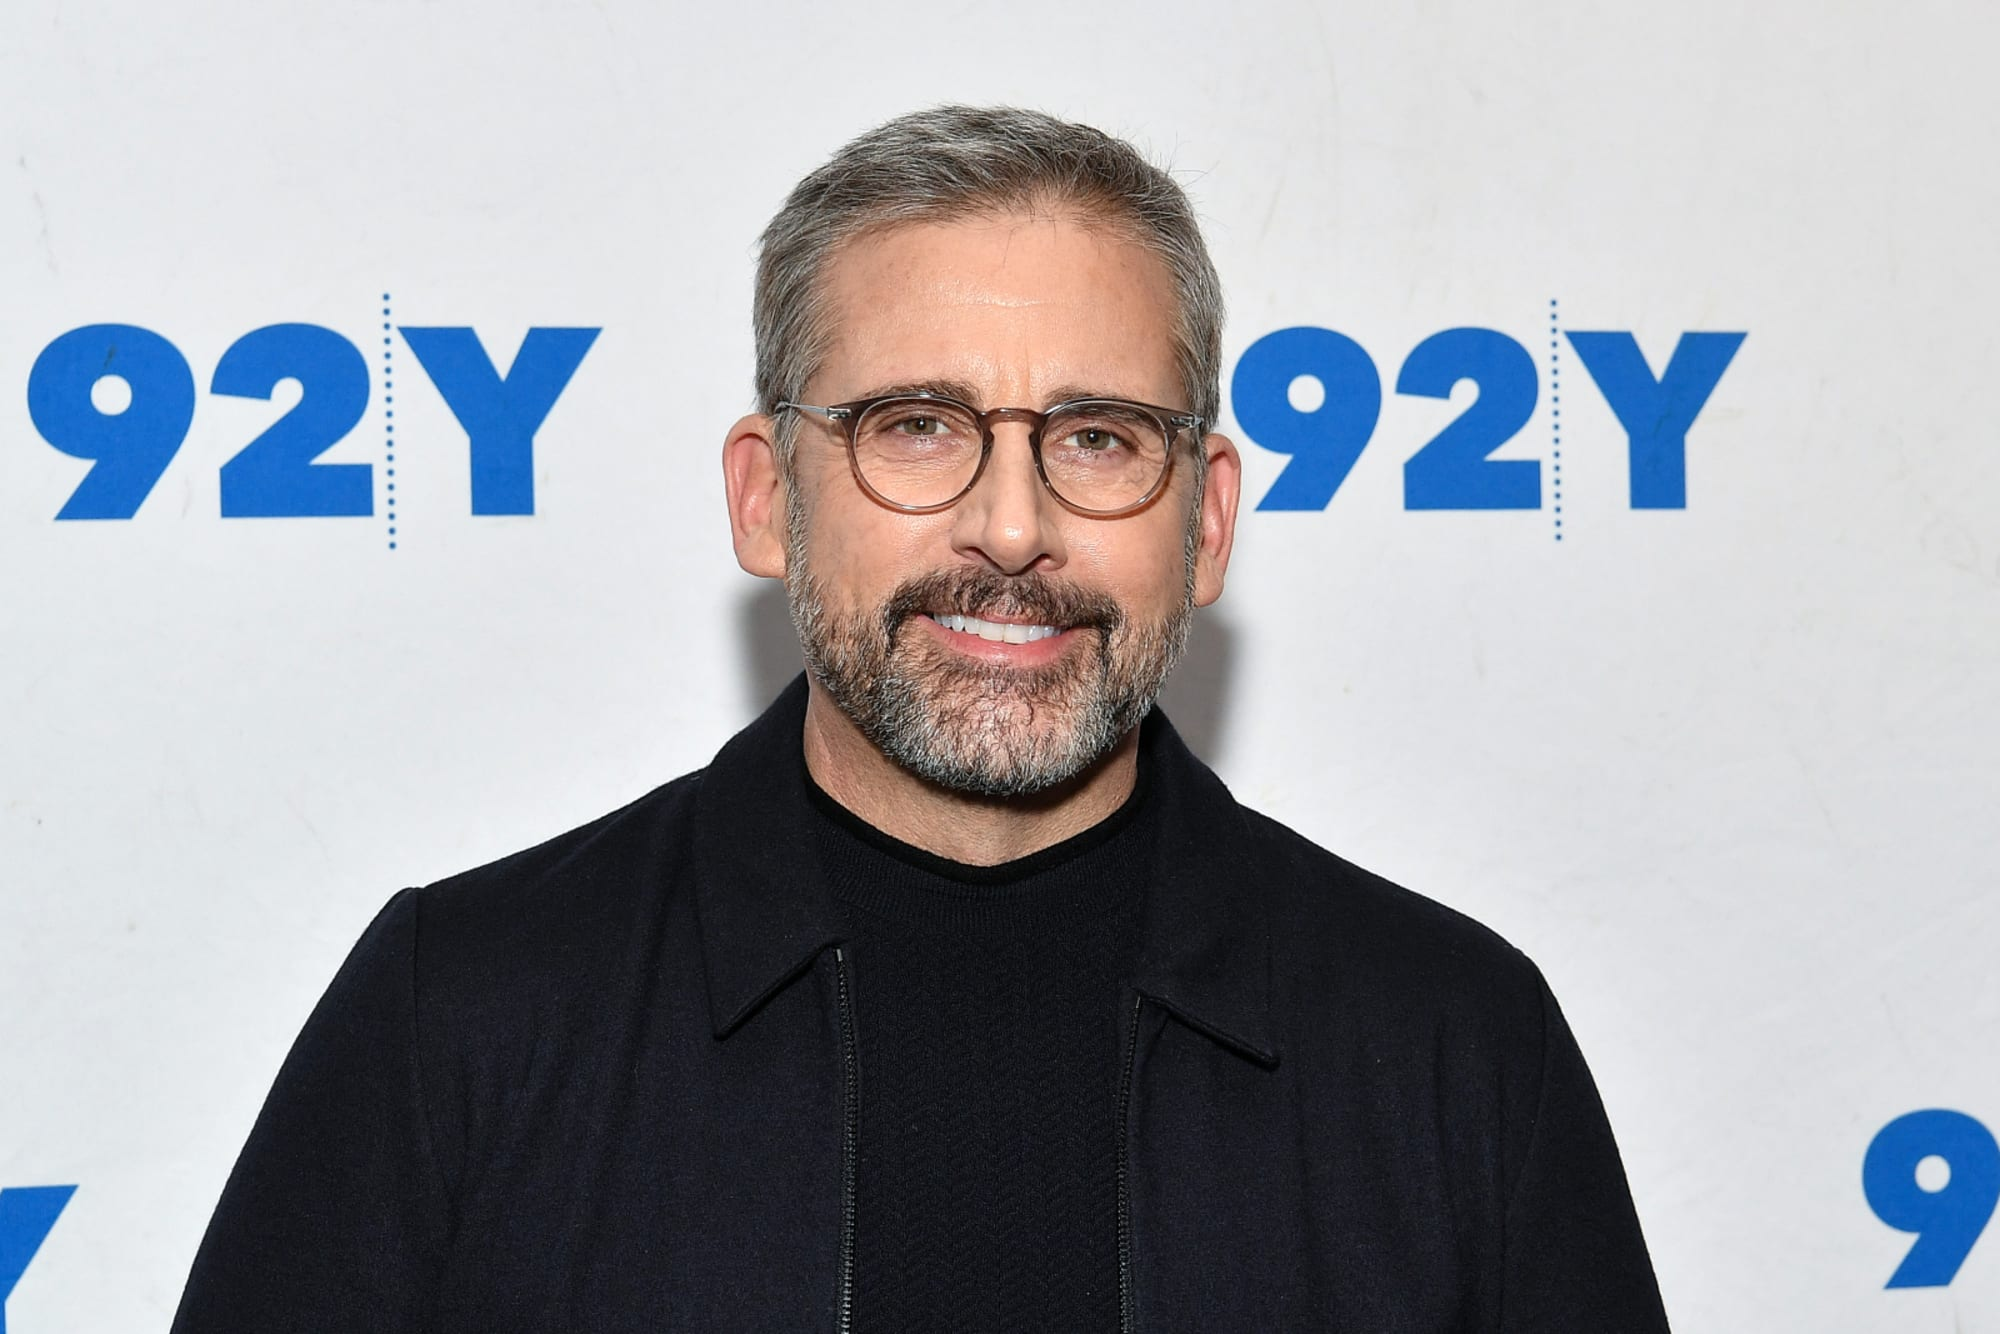 Steve Carell admits he doesn't remember many references or lines from The Office